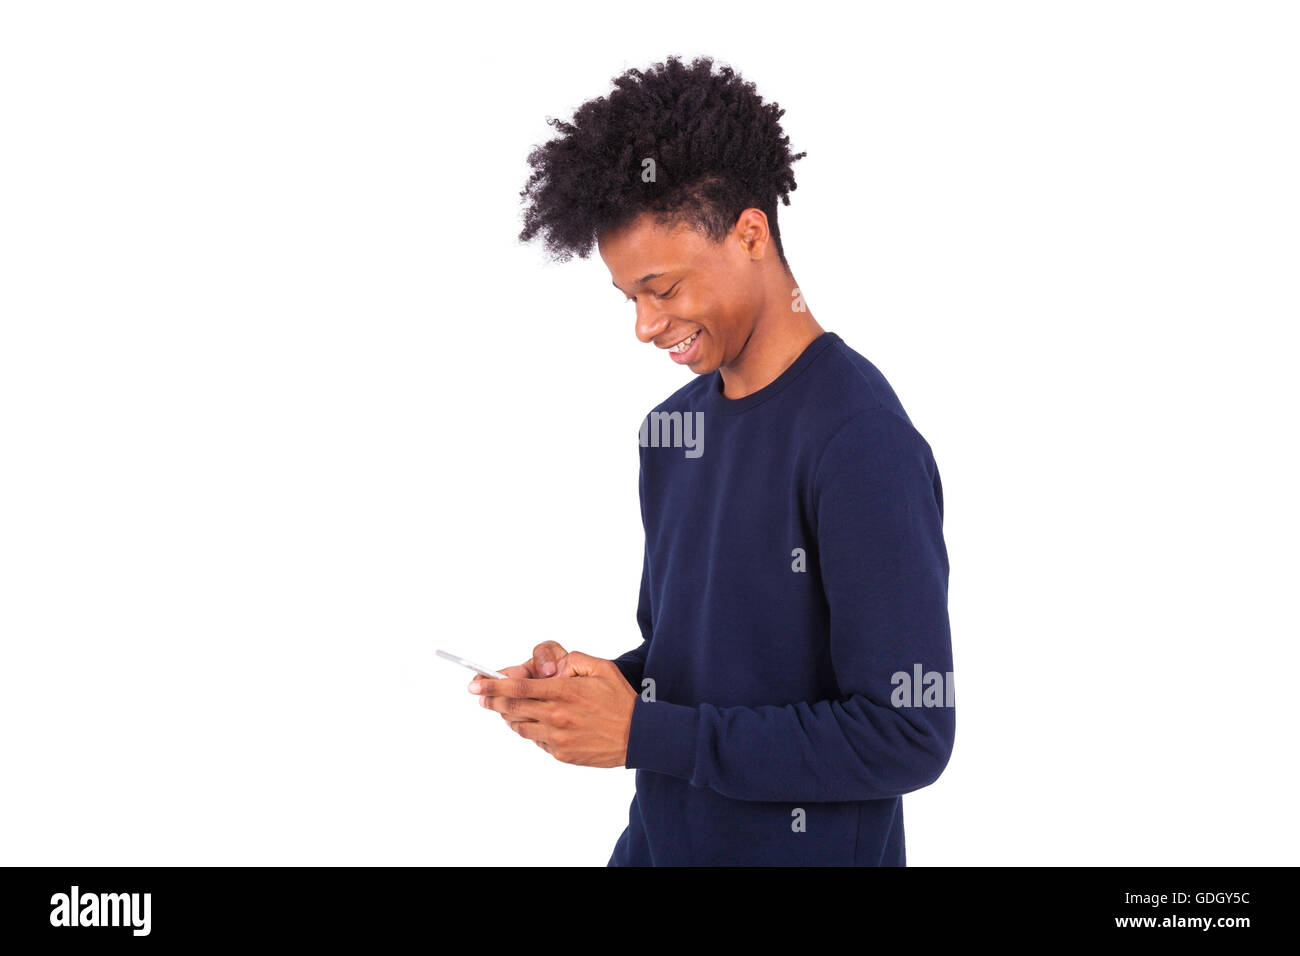 Young African American man sending a sms text message on his smartphone - Black teenager people - Stock Image